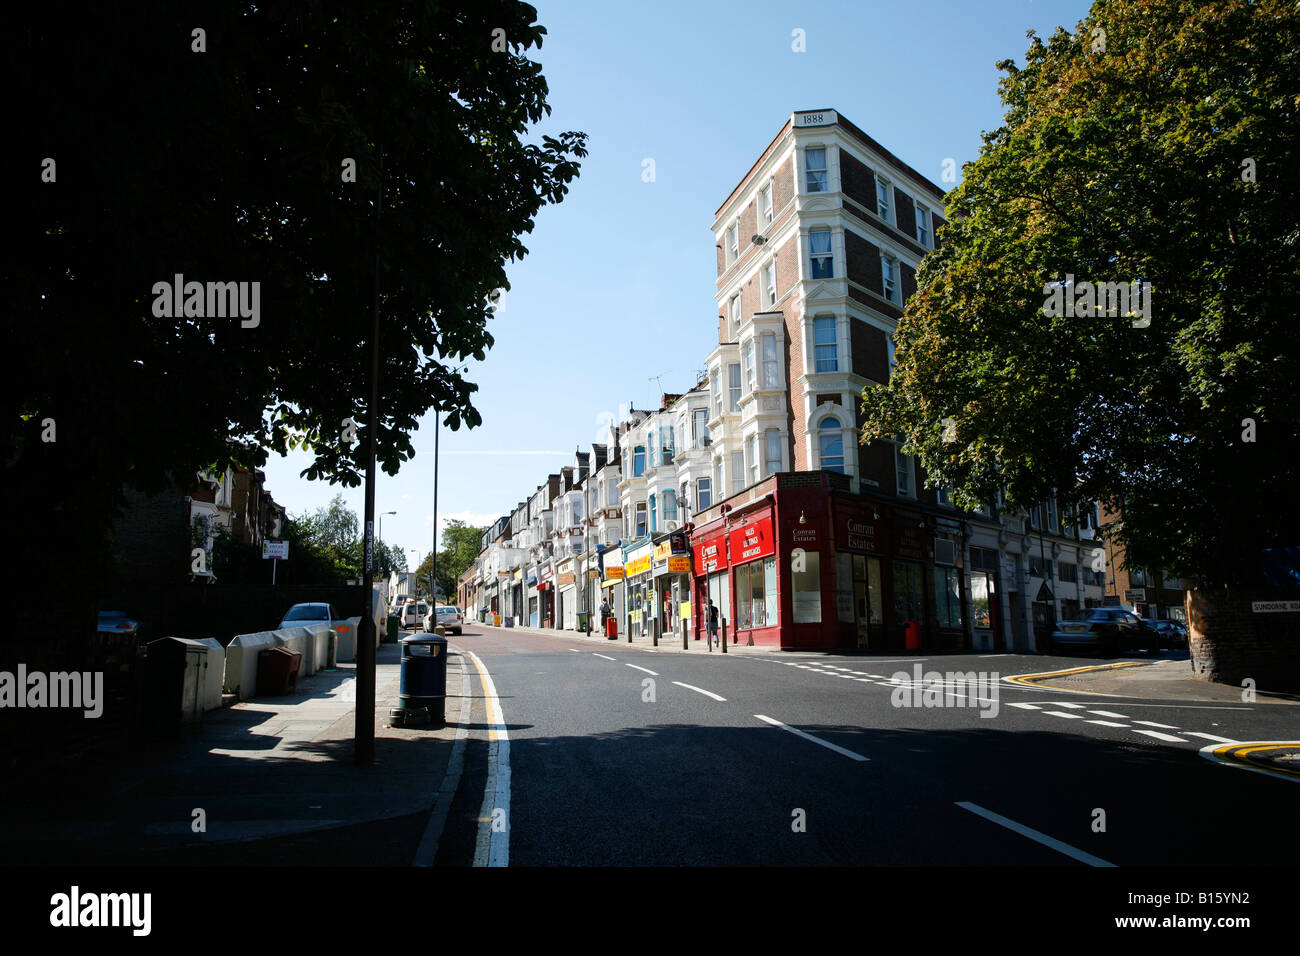 Charlton Church Lane in Charlton, London - Stock Image